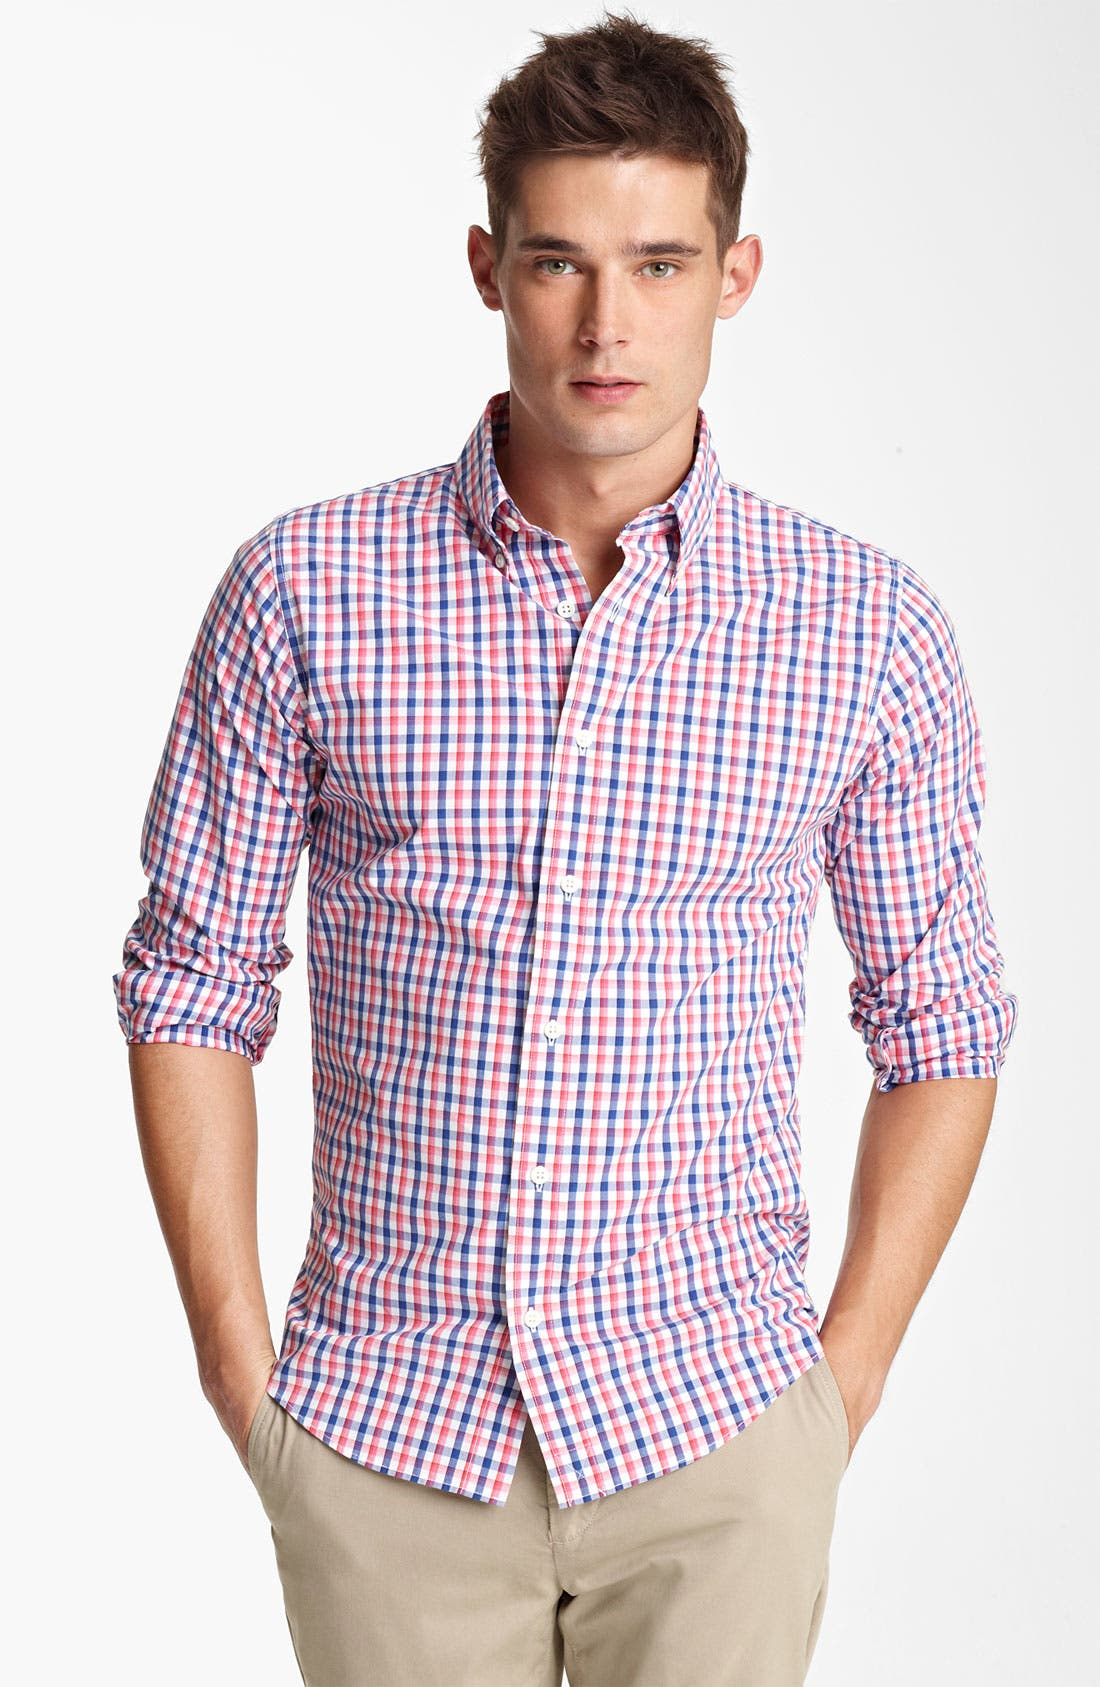 Alternate Image 1 Selected - Jack Spade 'Bailey' Gingham Check Shirt